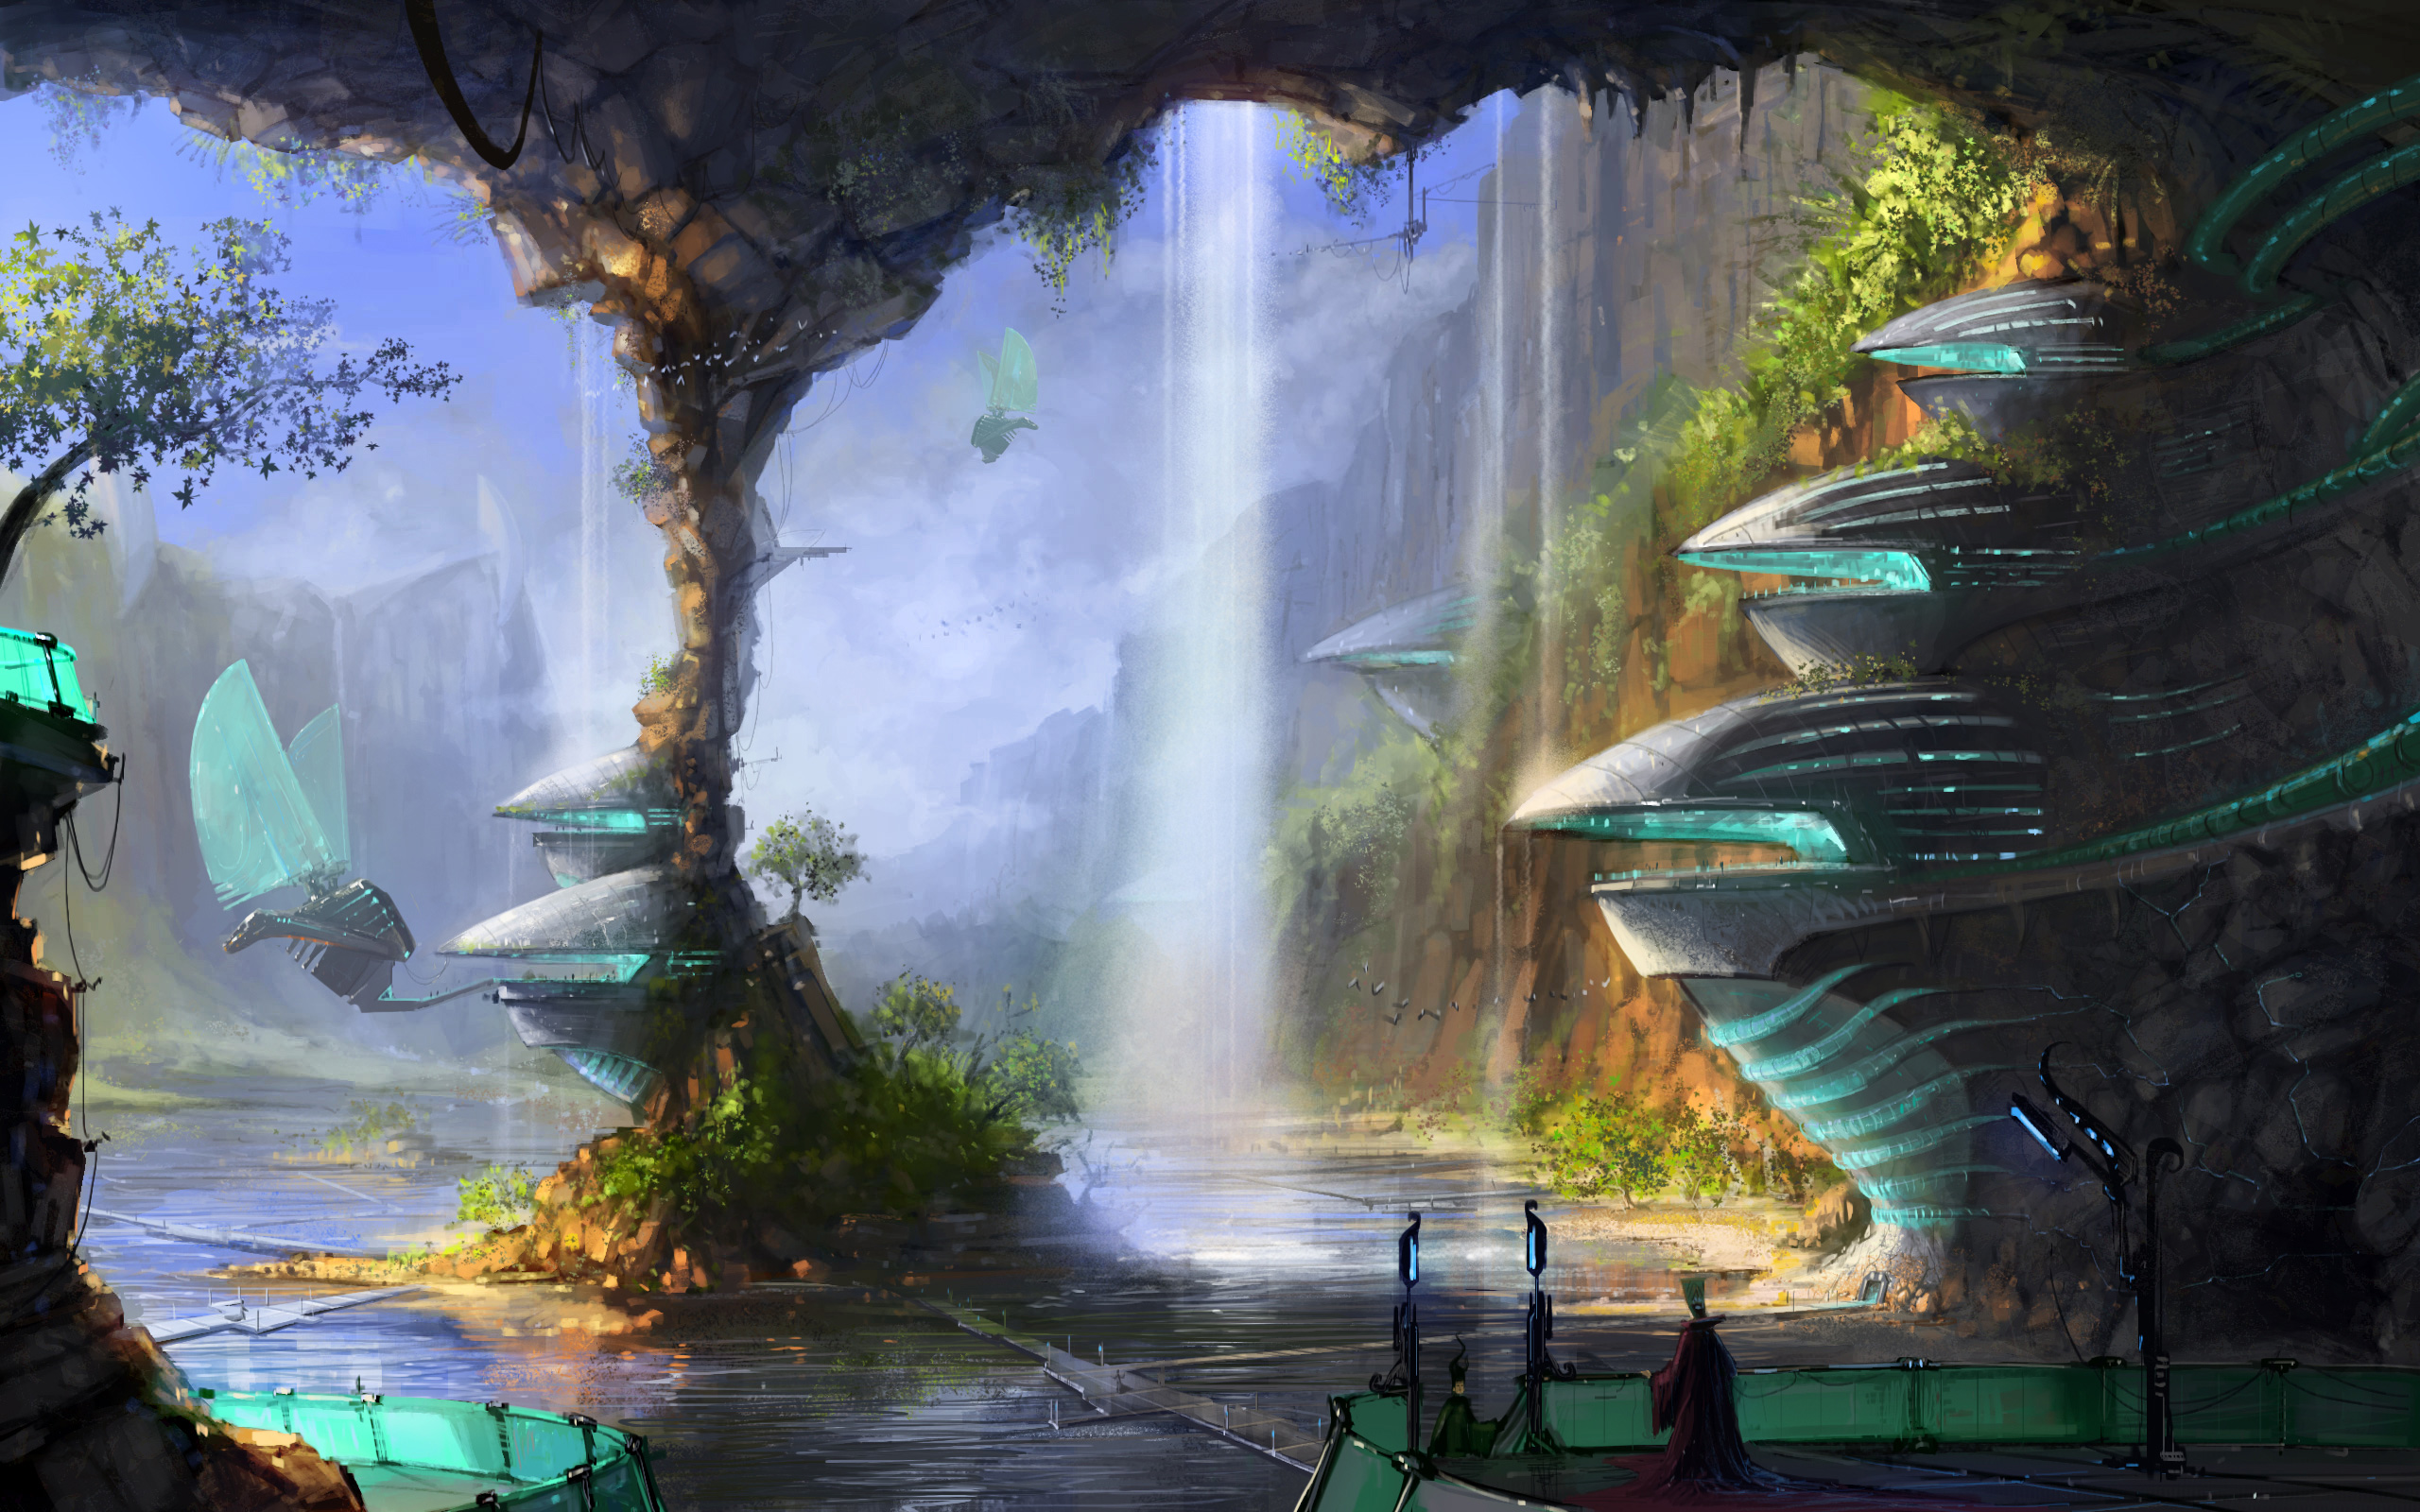 sci fi science fiction fantasy surreal art artistic paintings cg 2560x1600